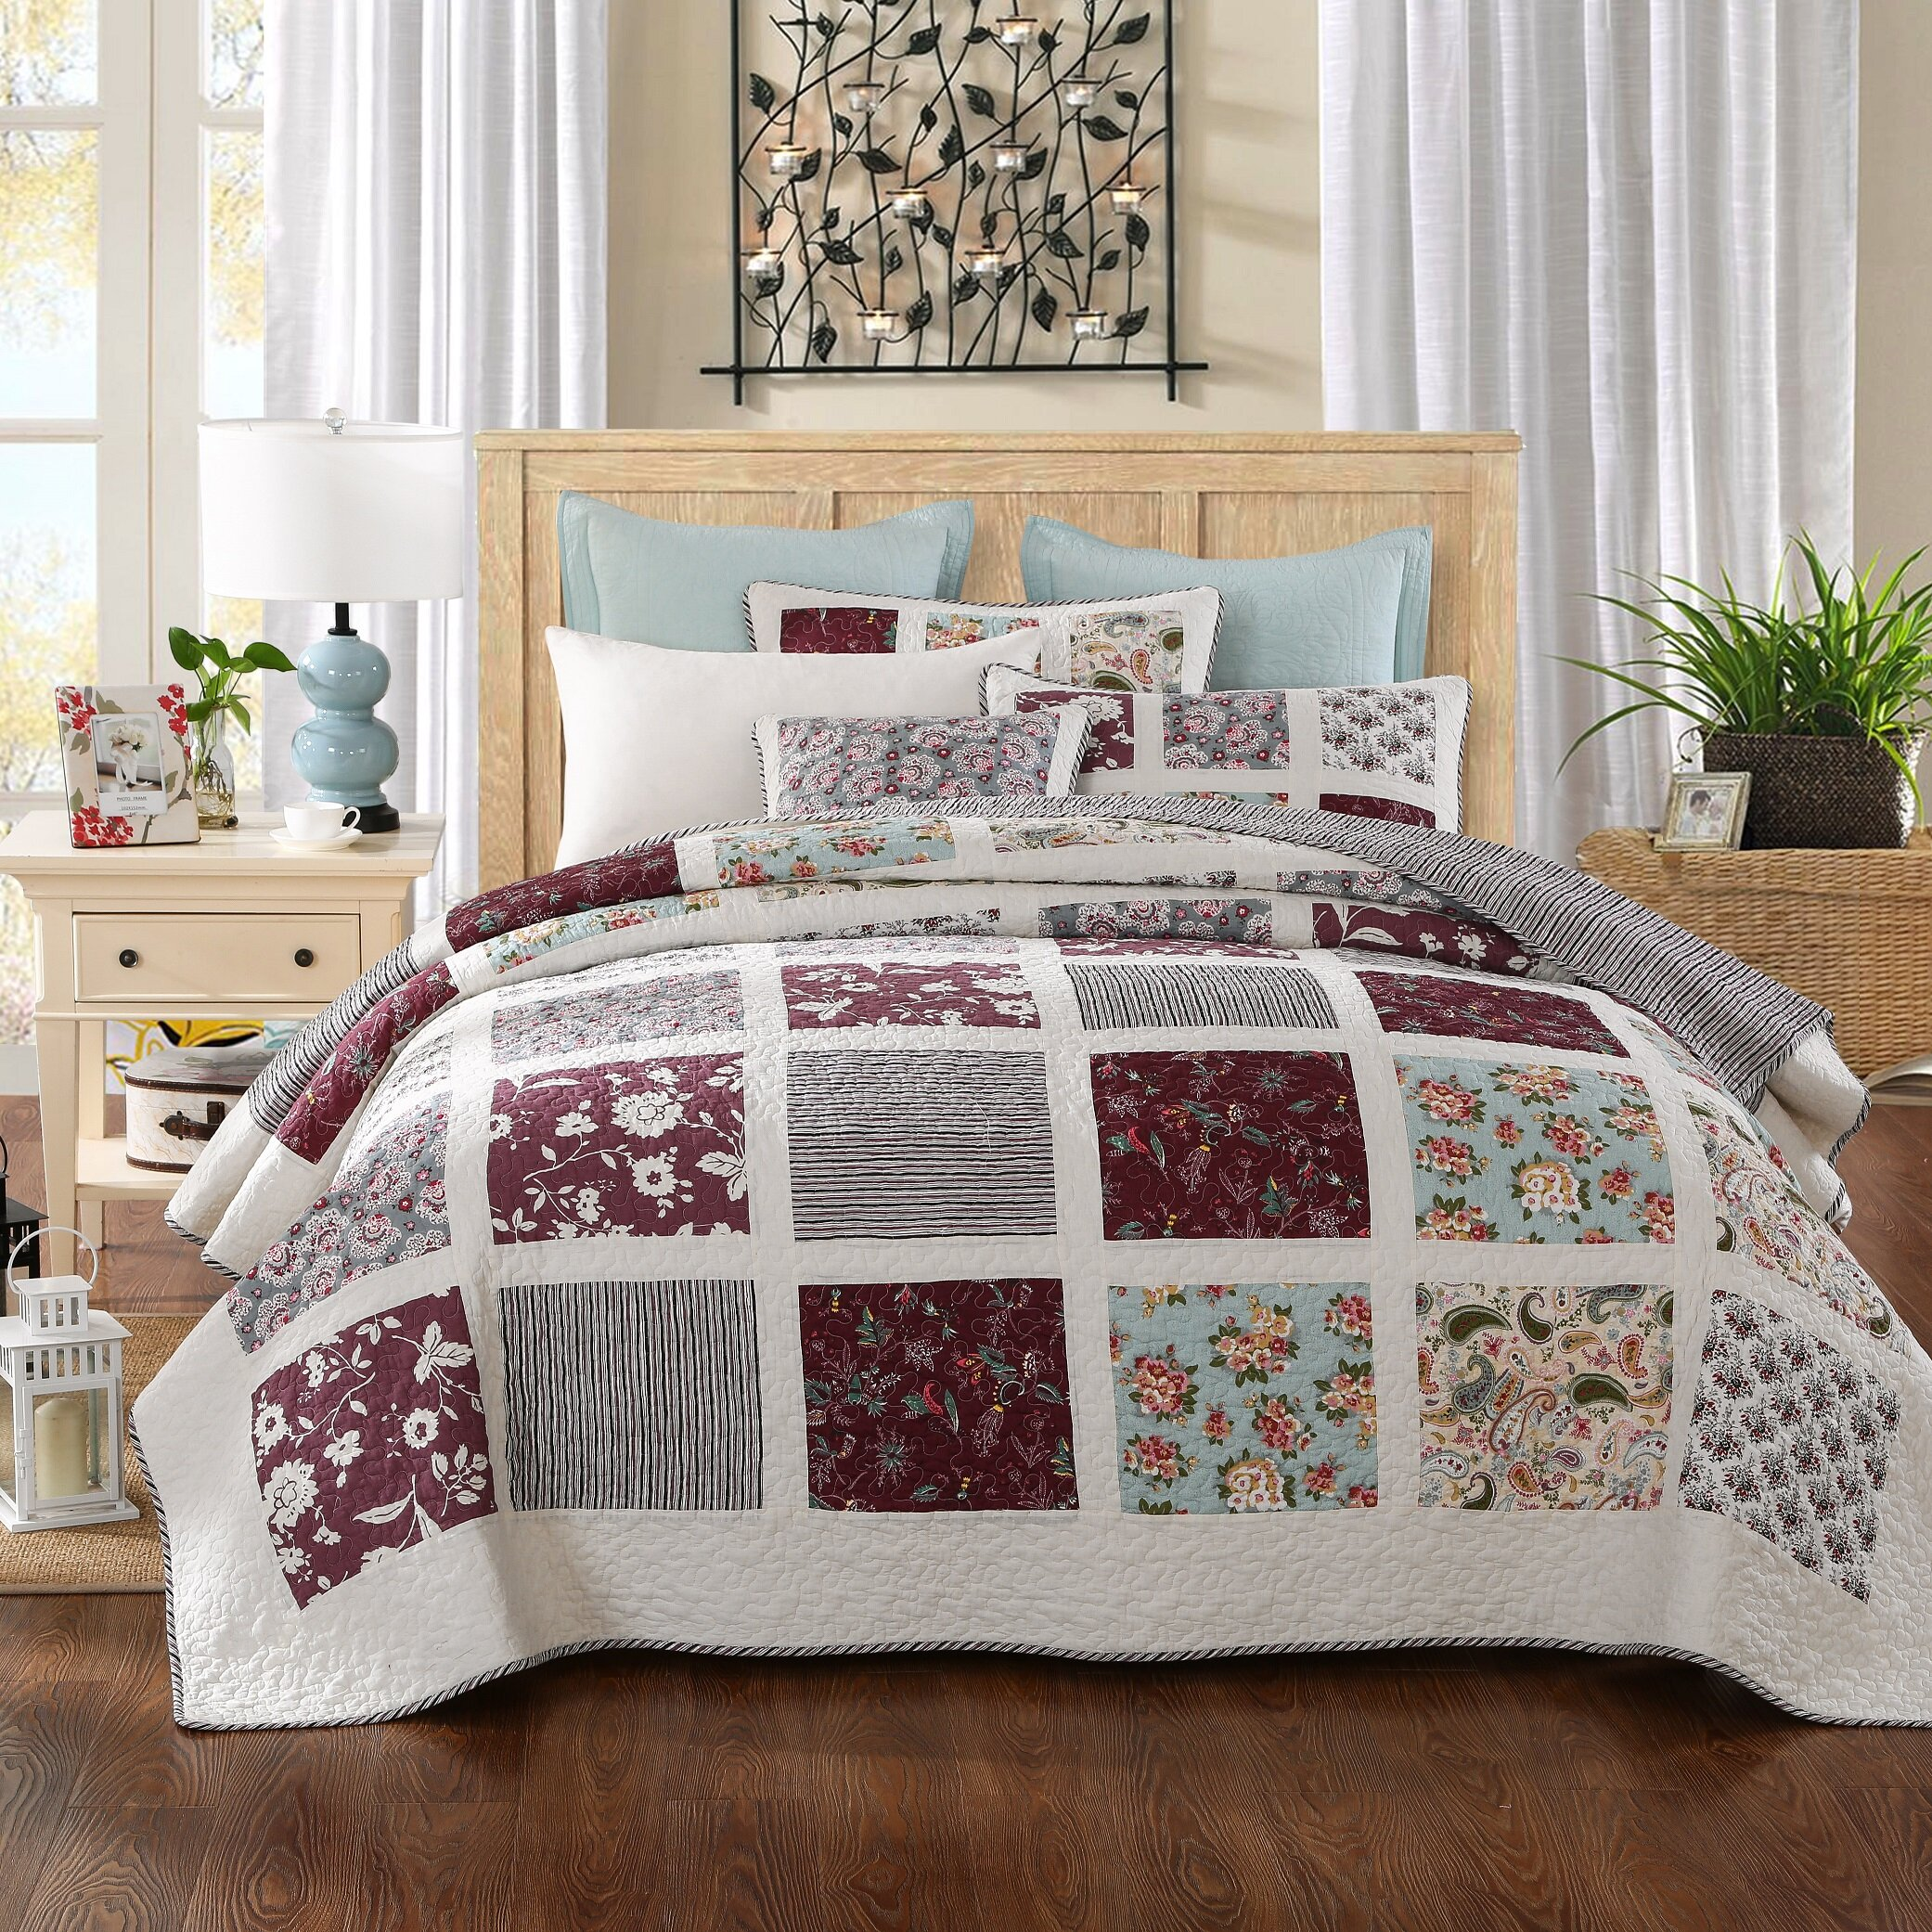 hp bedding comforter cover boho cotton set doona duvet quilt bohemian indian decor king size mandala quilts